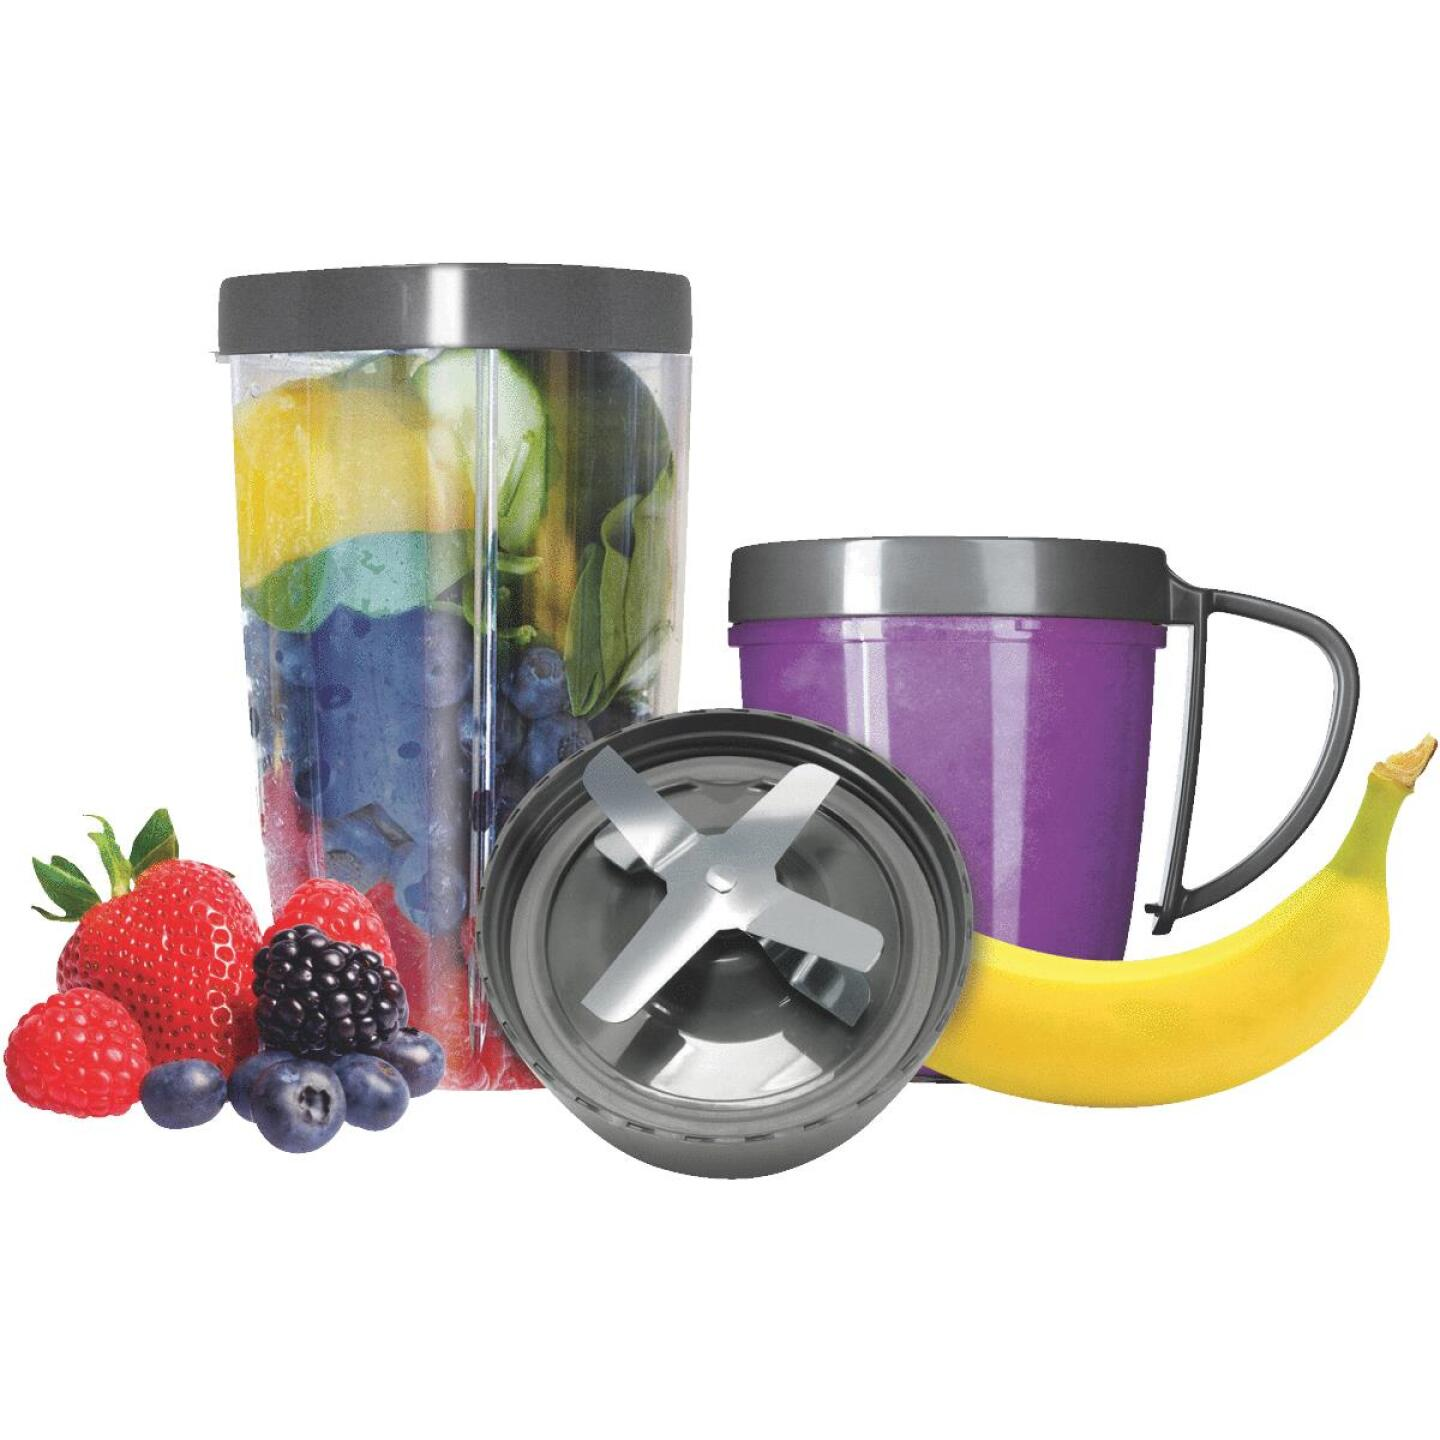 NutriBullet Blender Updgrate Kit Image 1